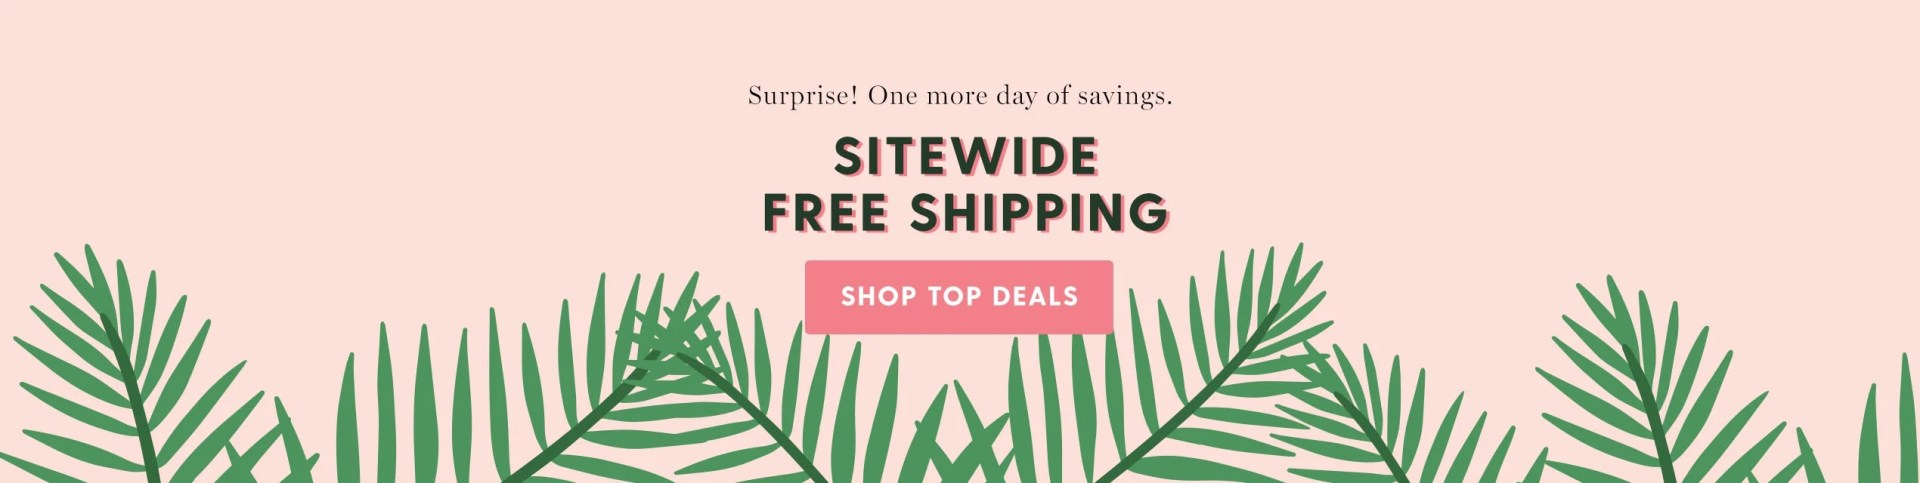 Surprise! One more day of savings. Sitewide free shipping. Shop top deals.